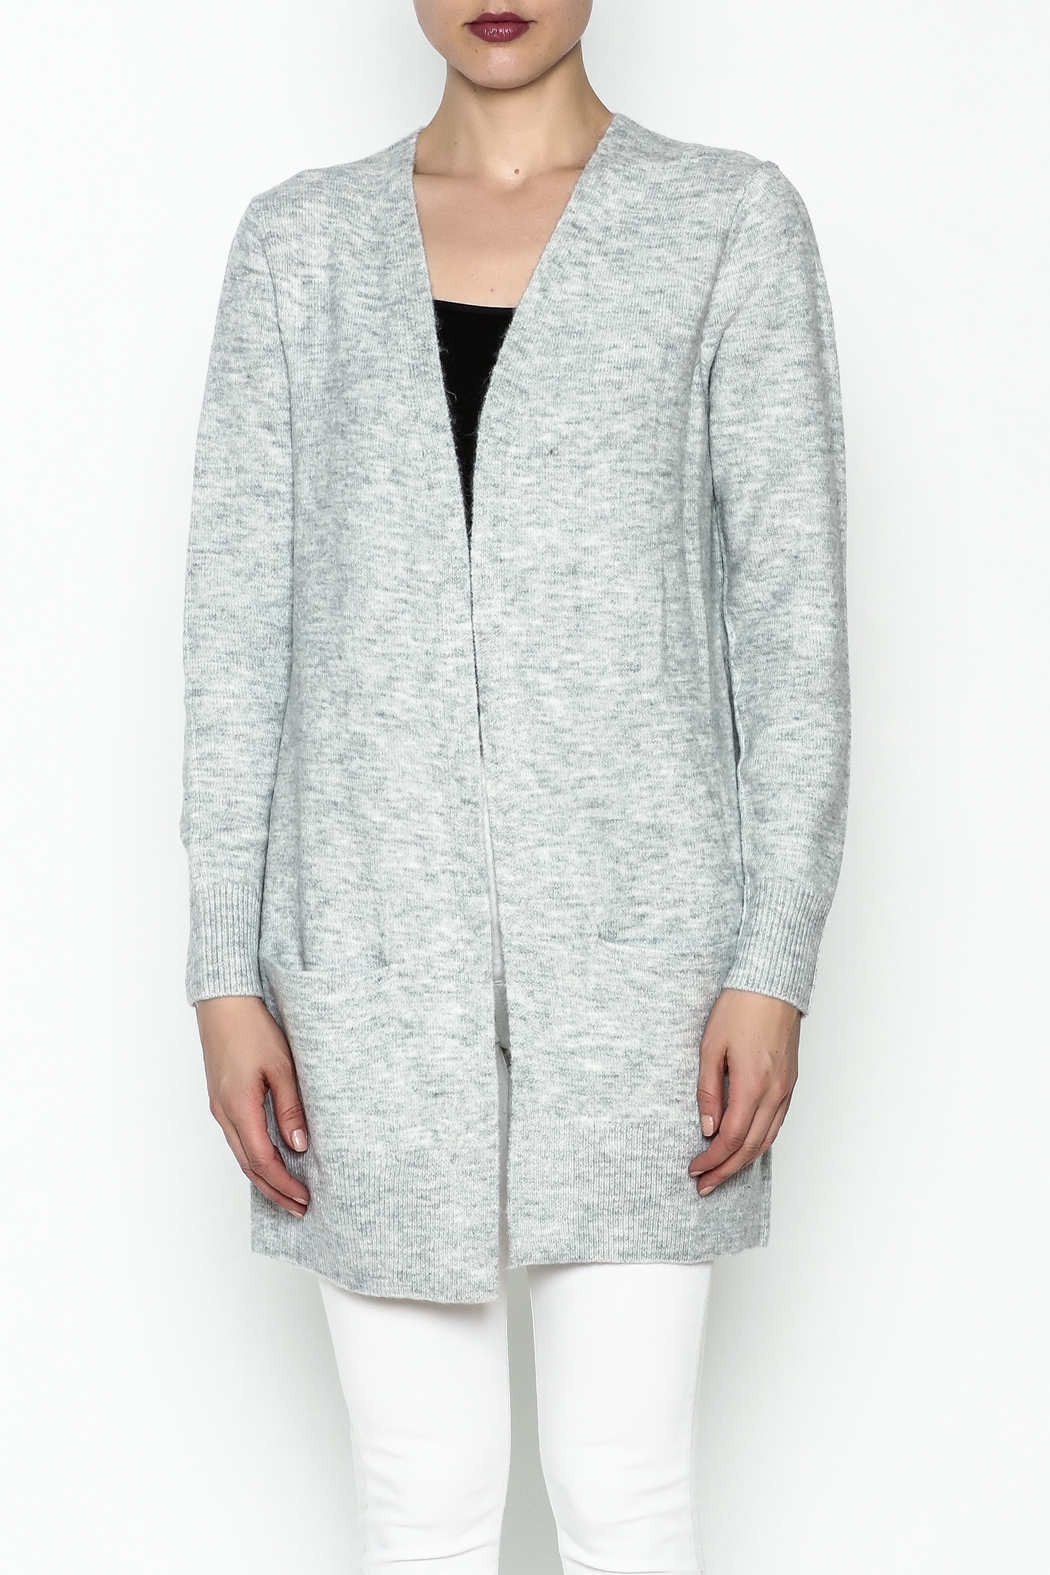 Black Tape/Dex Marled Cardigan - Front Full Image